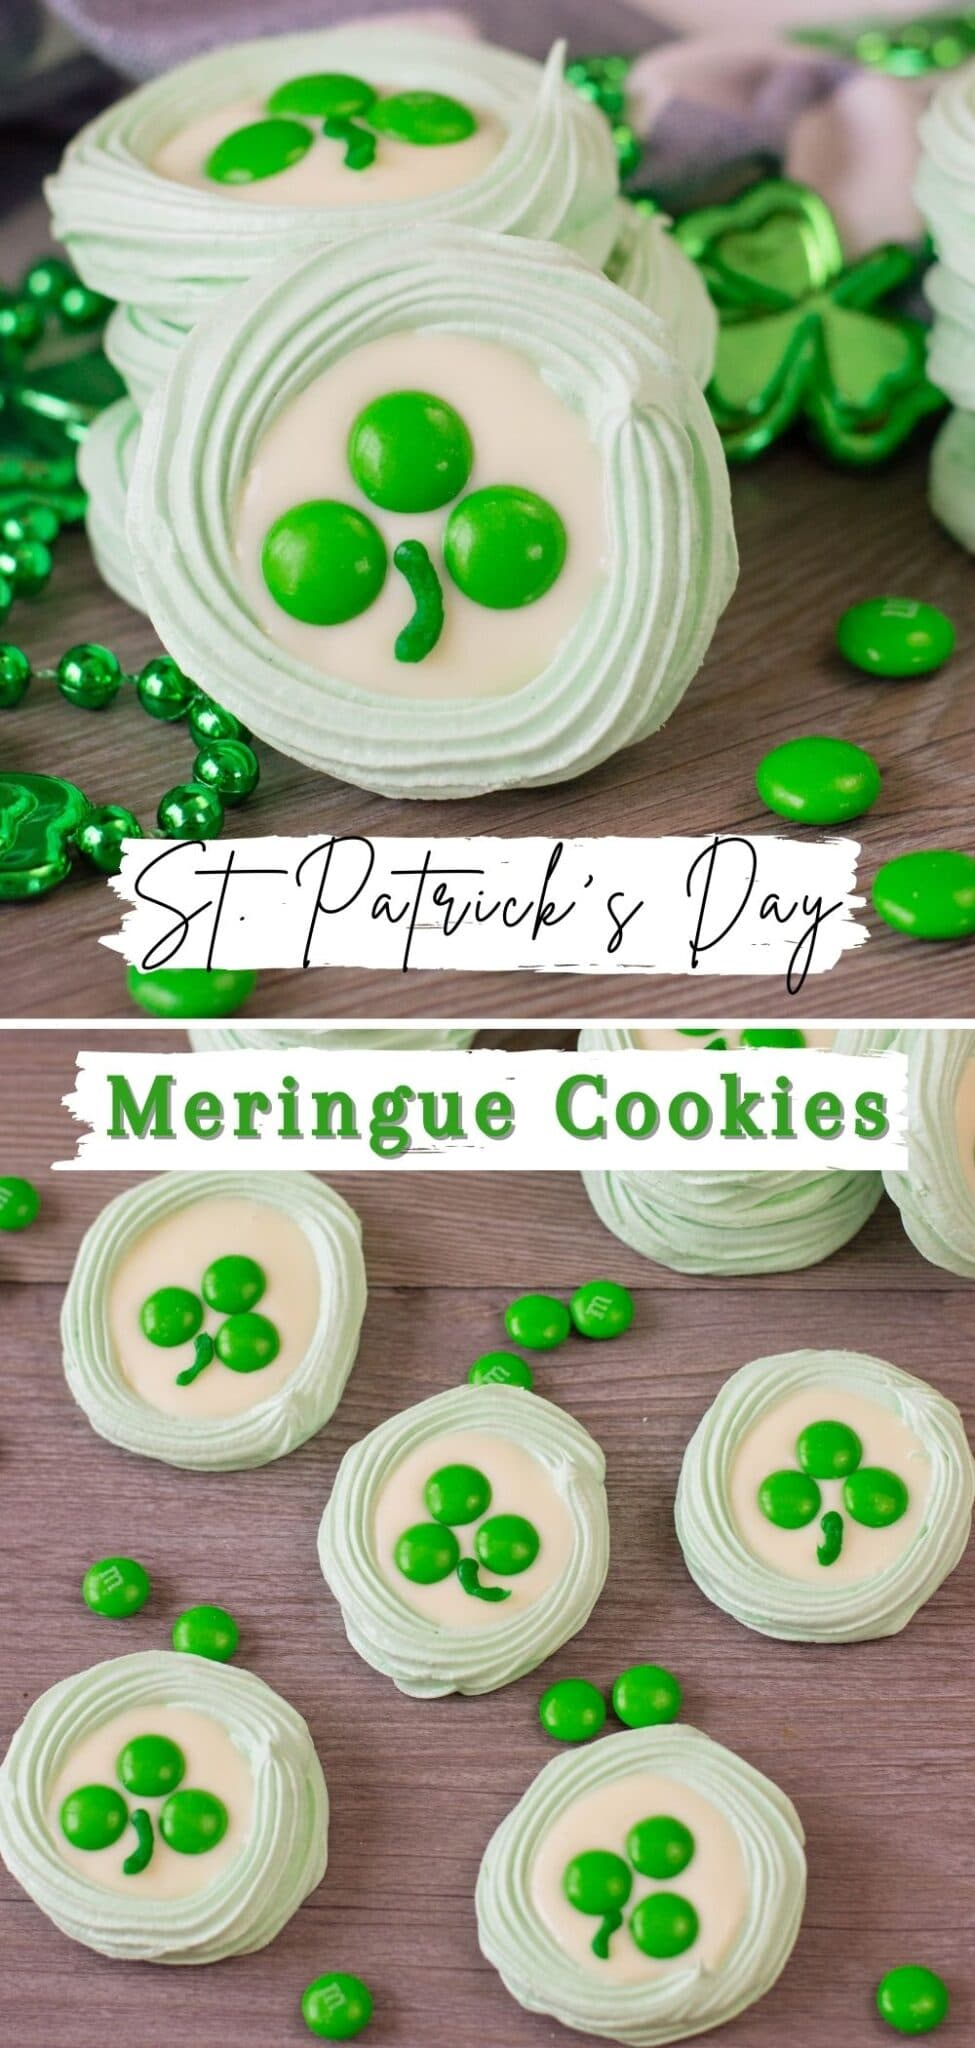 These St. Patrick's Day Meringue Cookies are the perfect, light and airy goodies to help you celebrate this year. #stpatricksday #meringue #cookies via @wondermomwannab